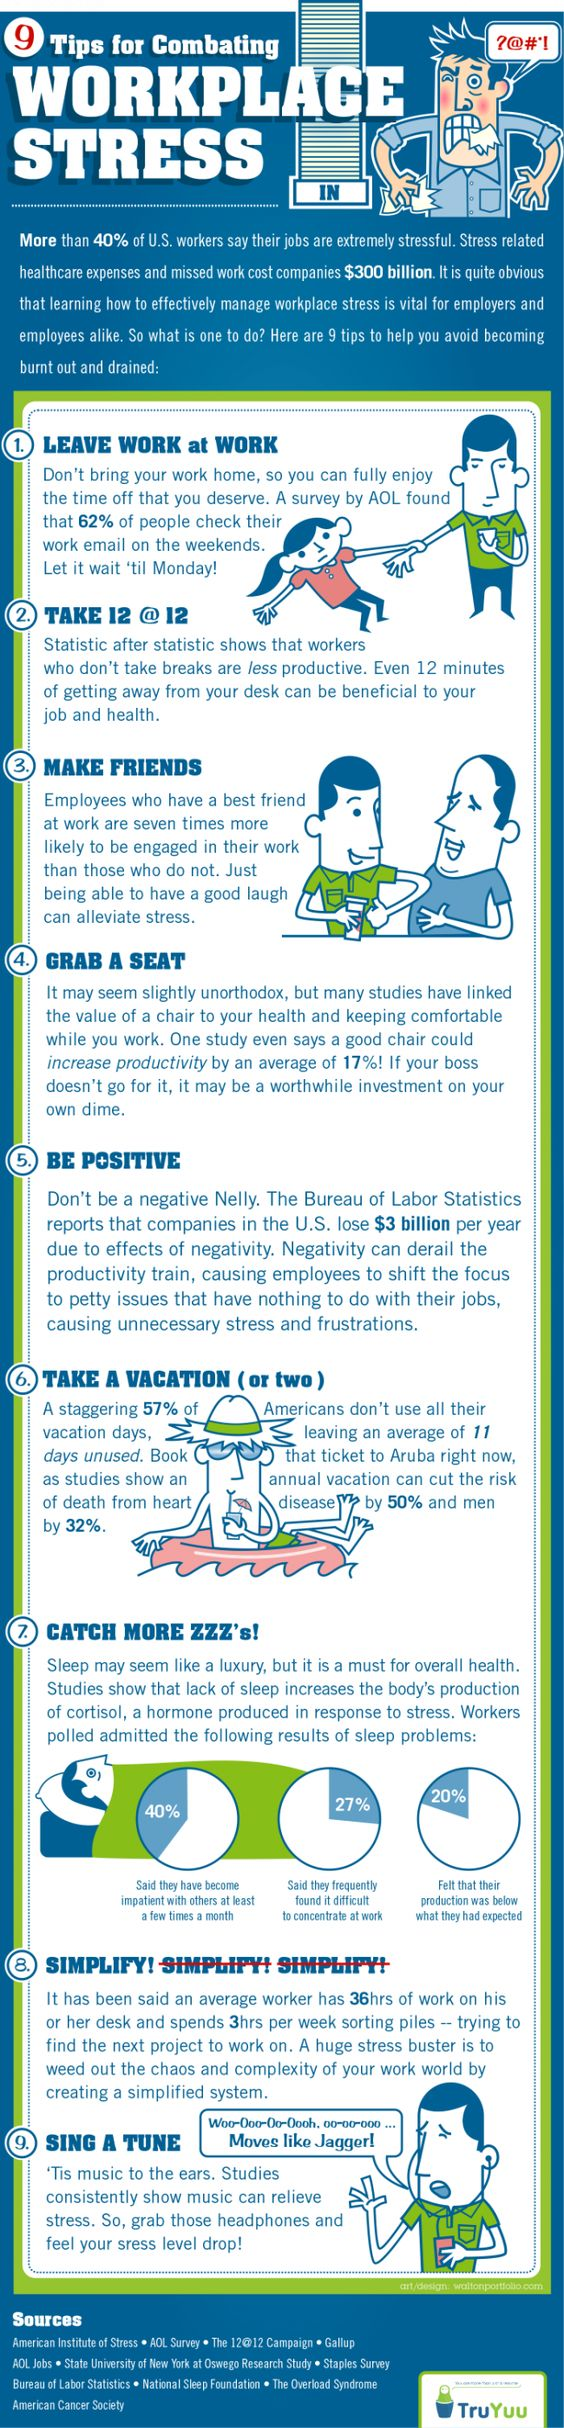 Fighting Workplace Stress? Here Are 9 Good Tips To Help Get You Started